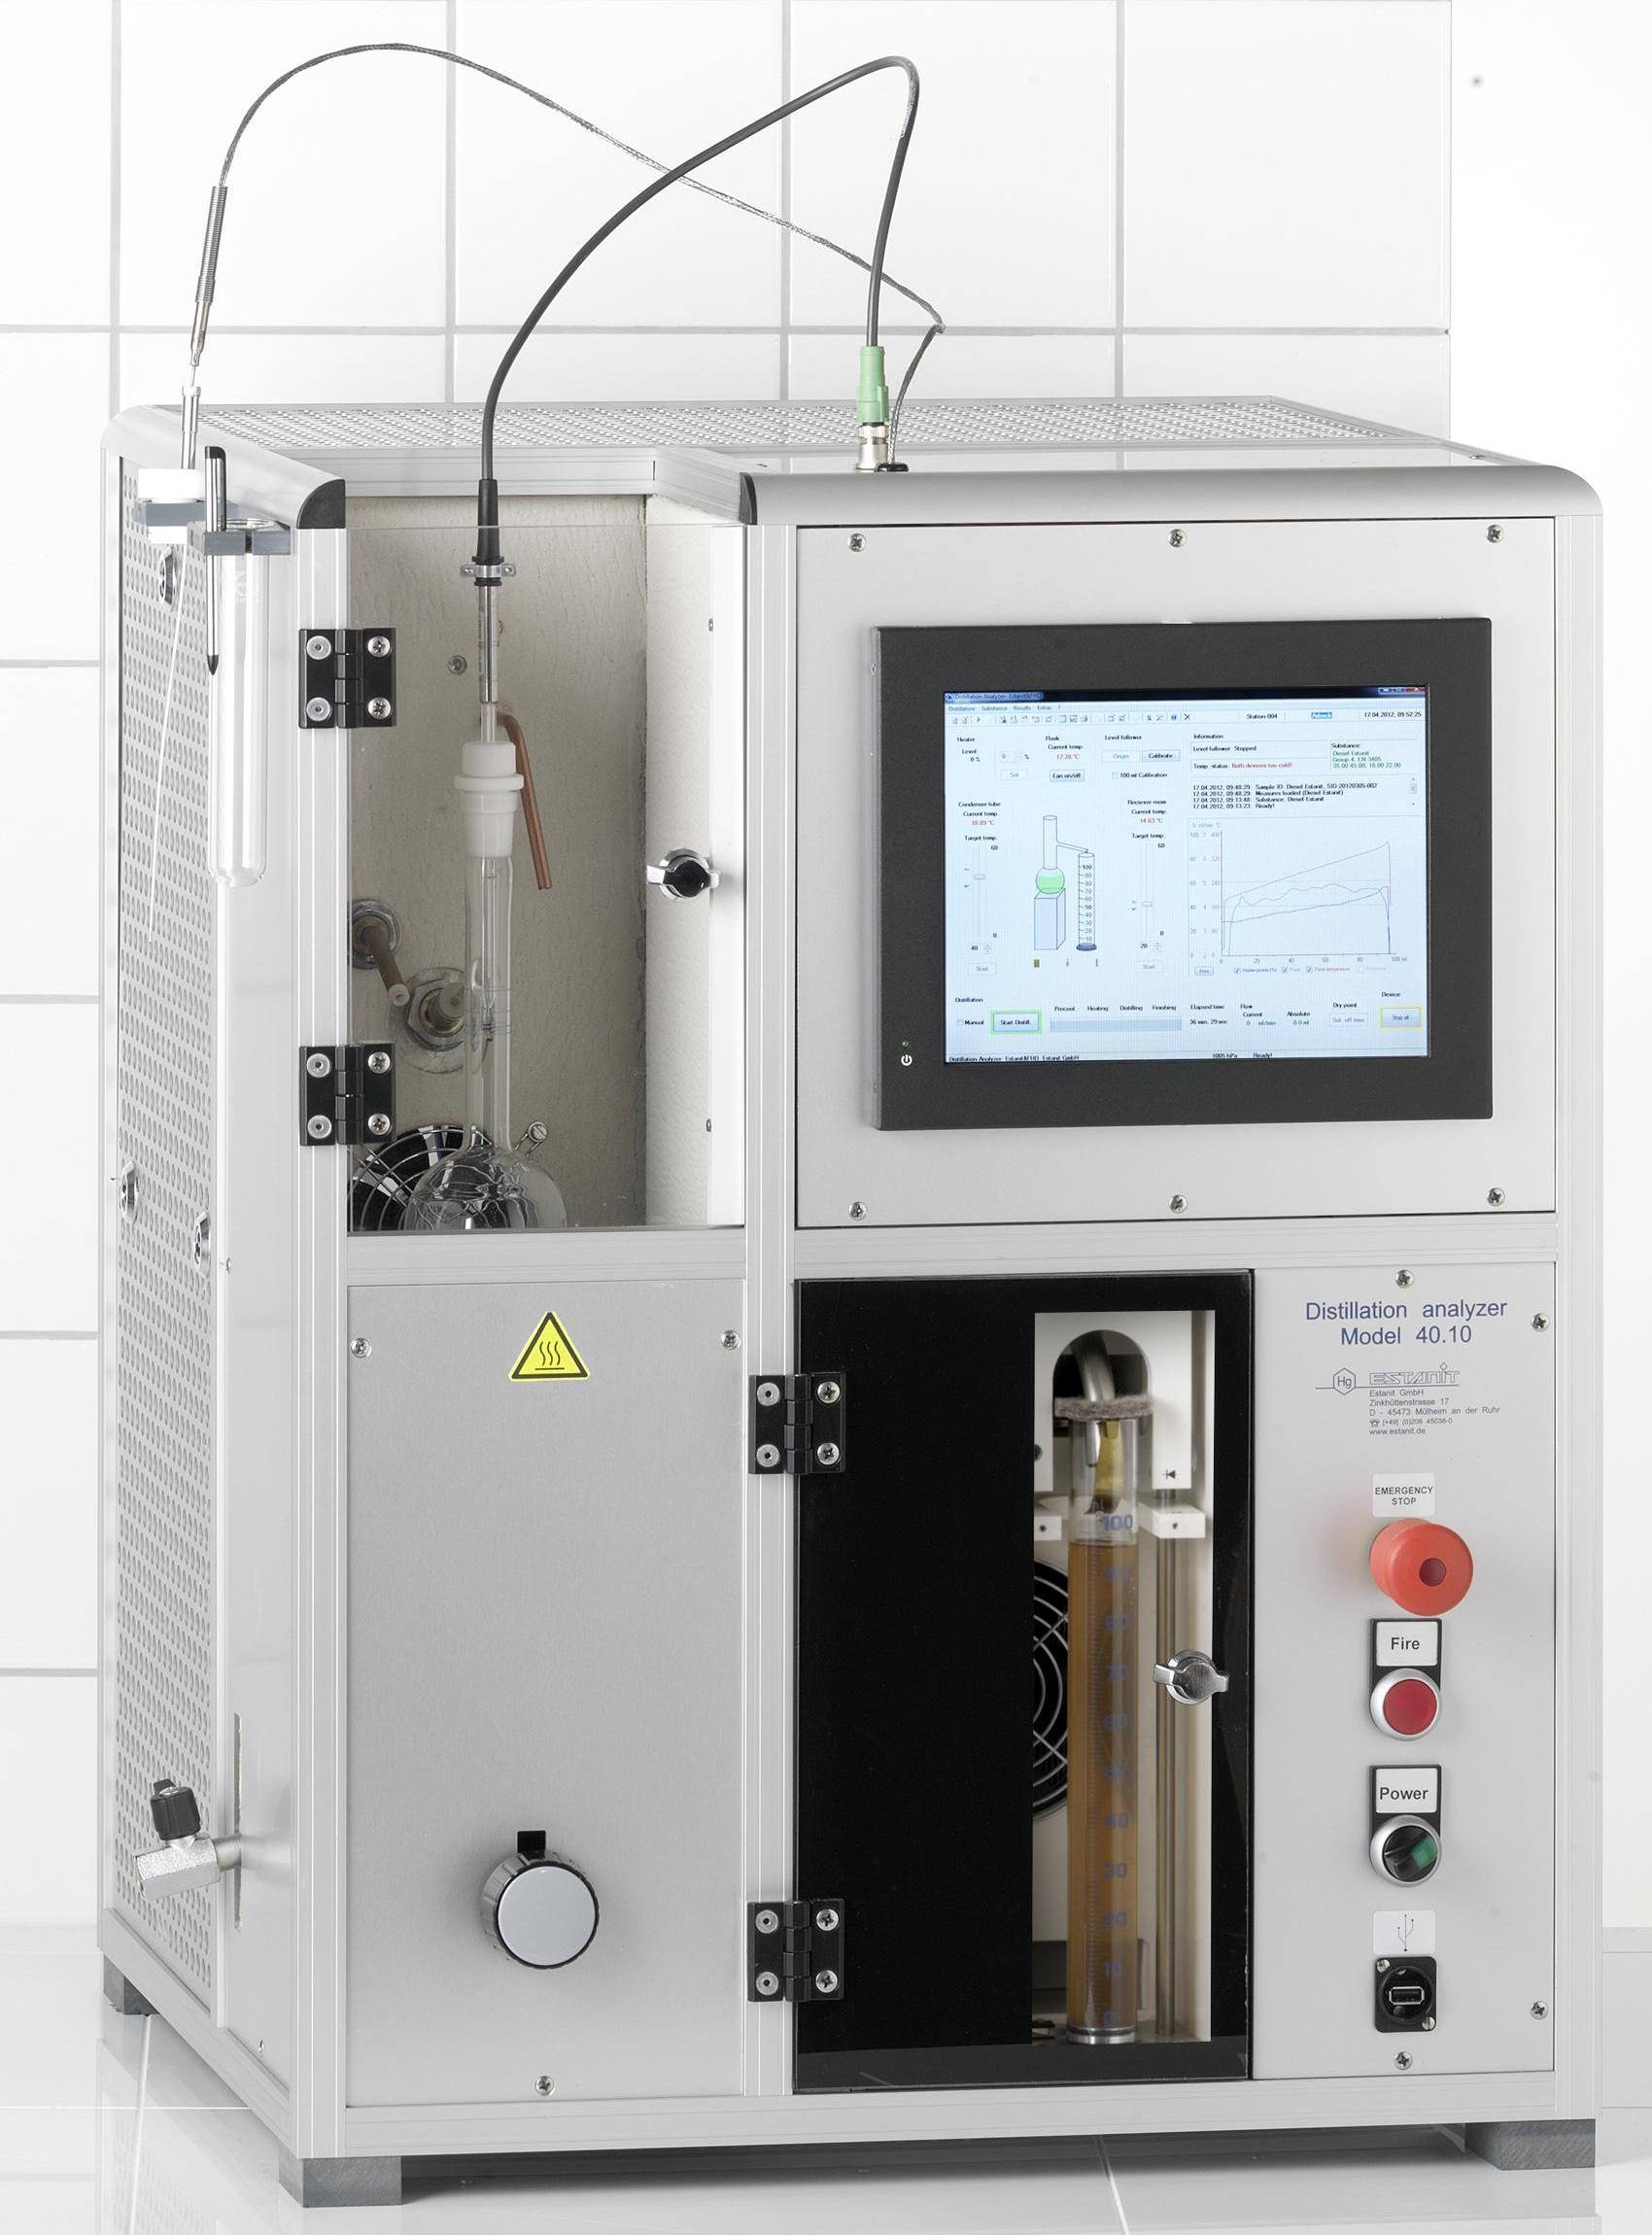 Atmospheric Distillation Analyzer